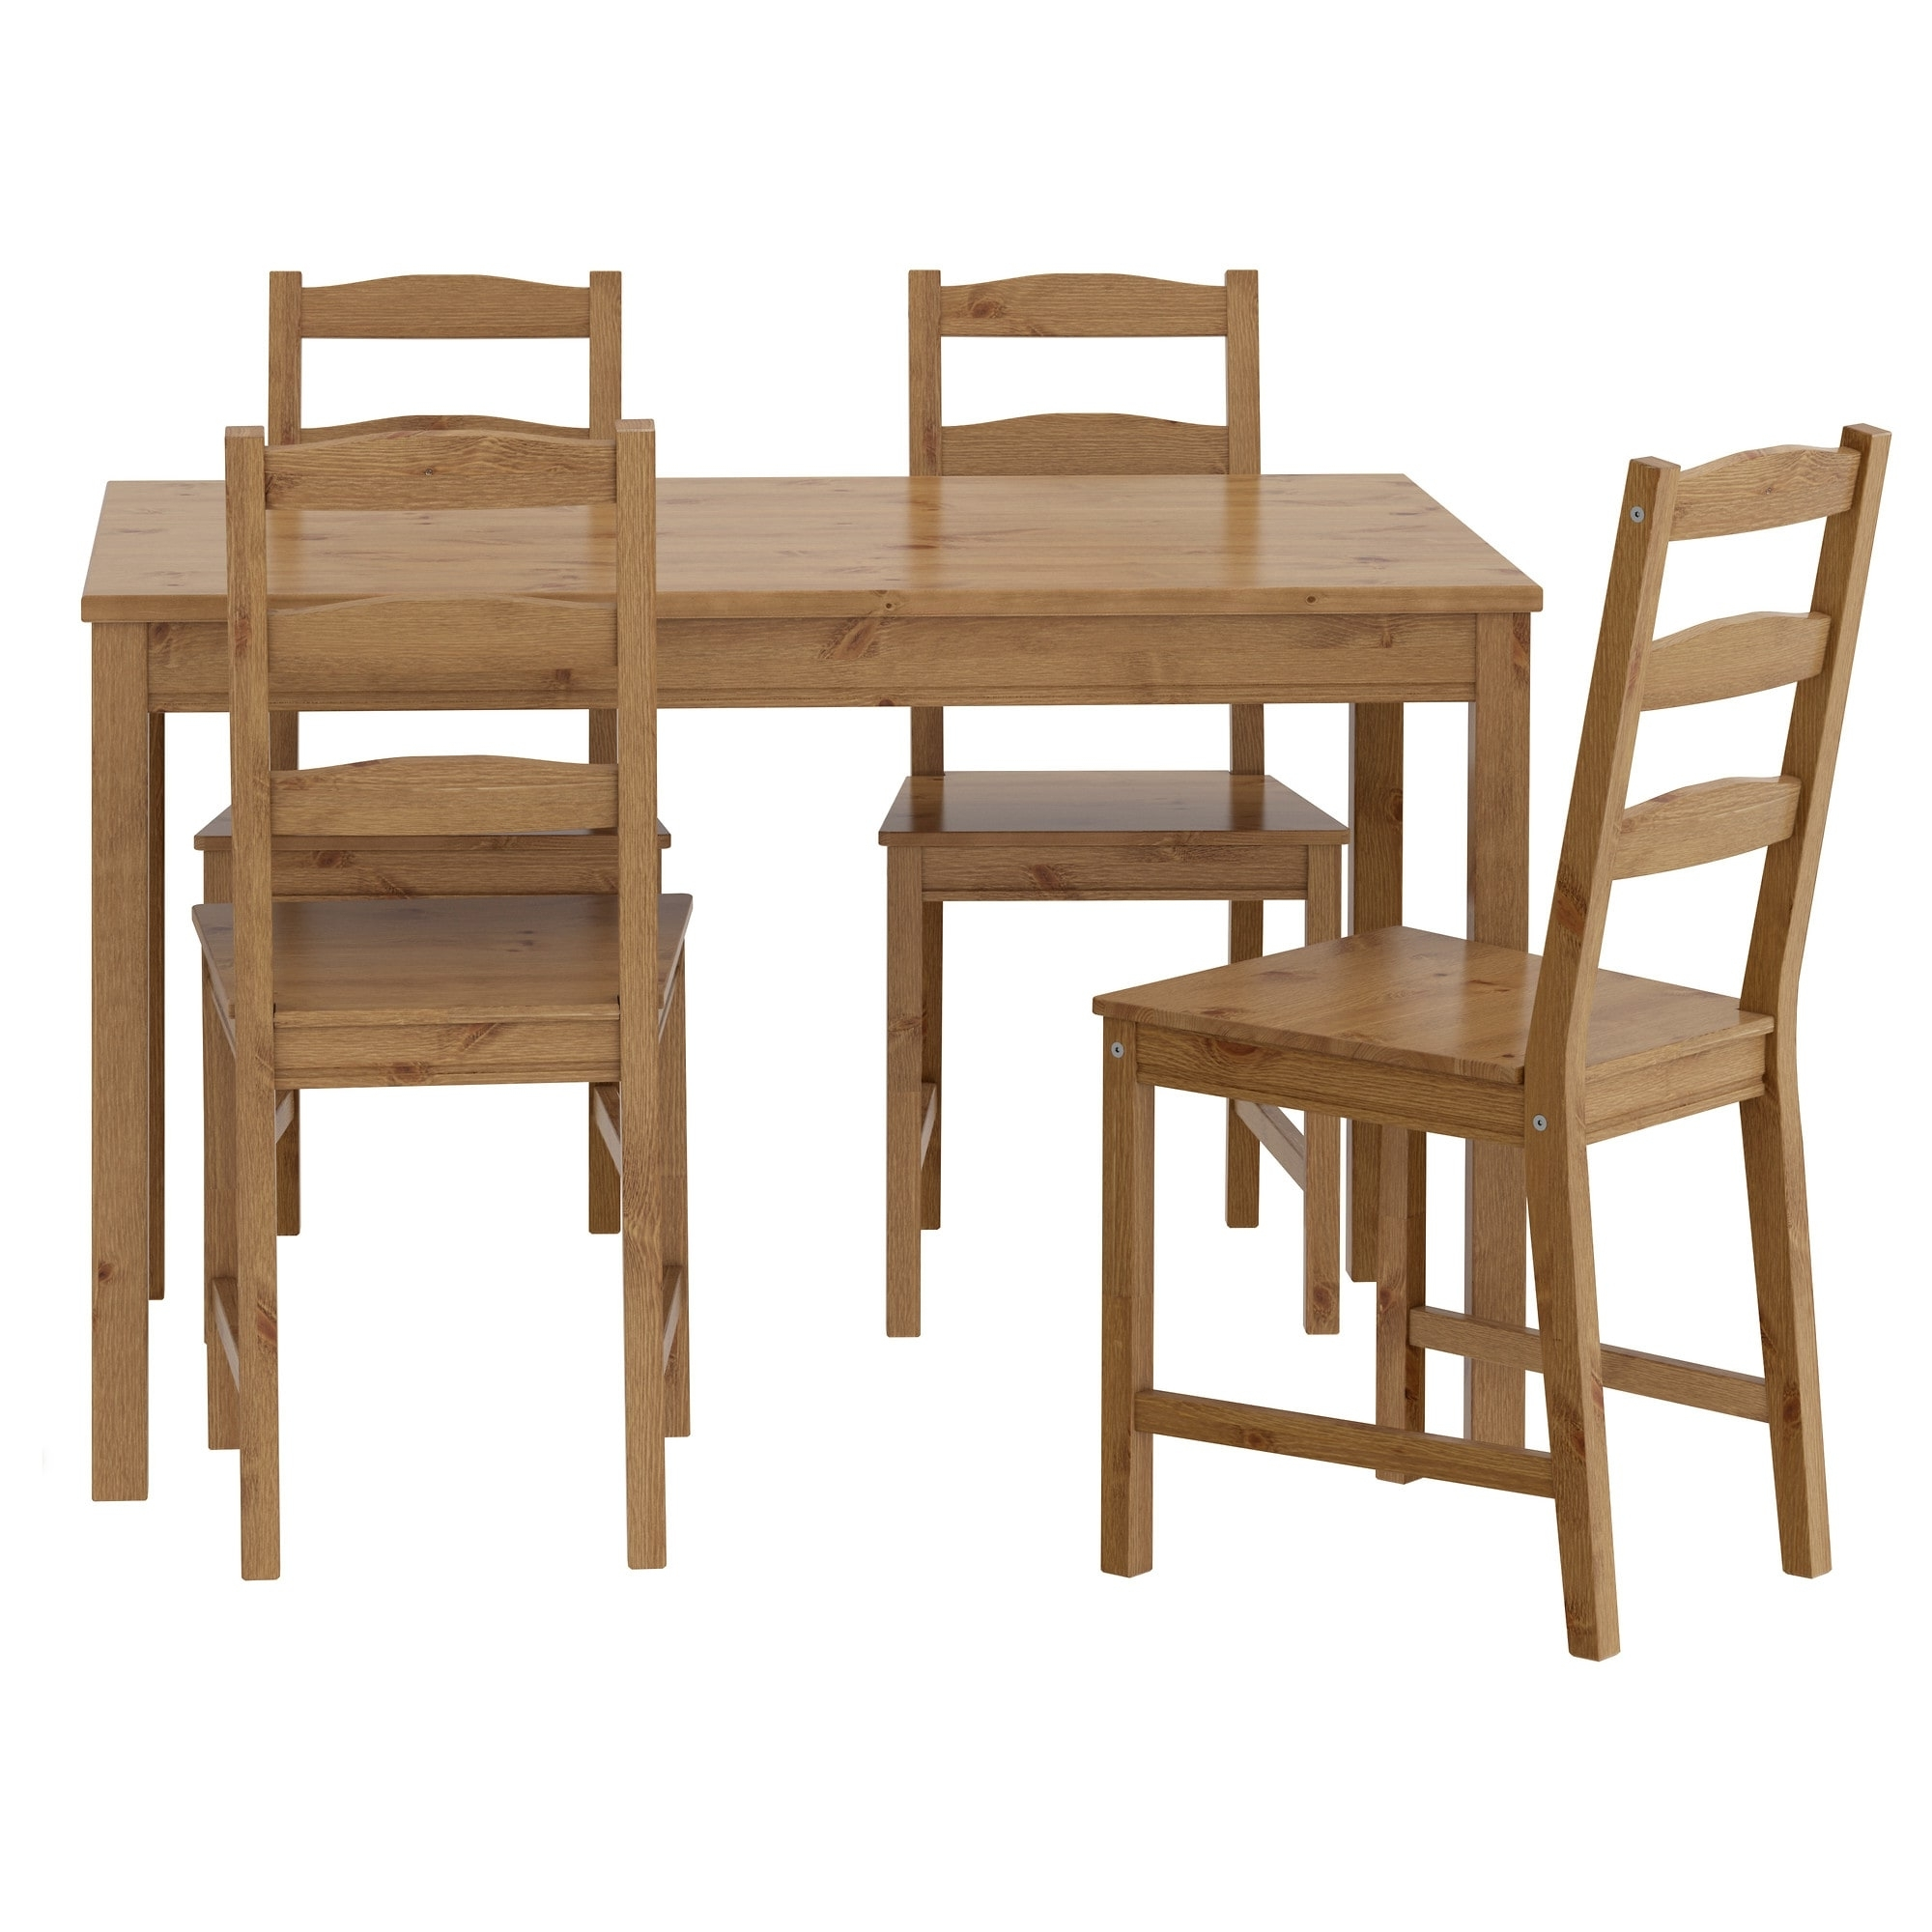 Preferred Jokkmokk Table And 4 Chairs Antique Stain – Ikea Inside Ikea Round Dining Tables Set (View 23 of 25)